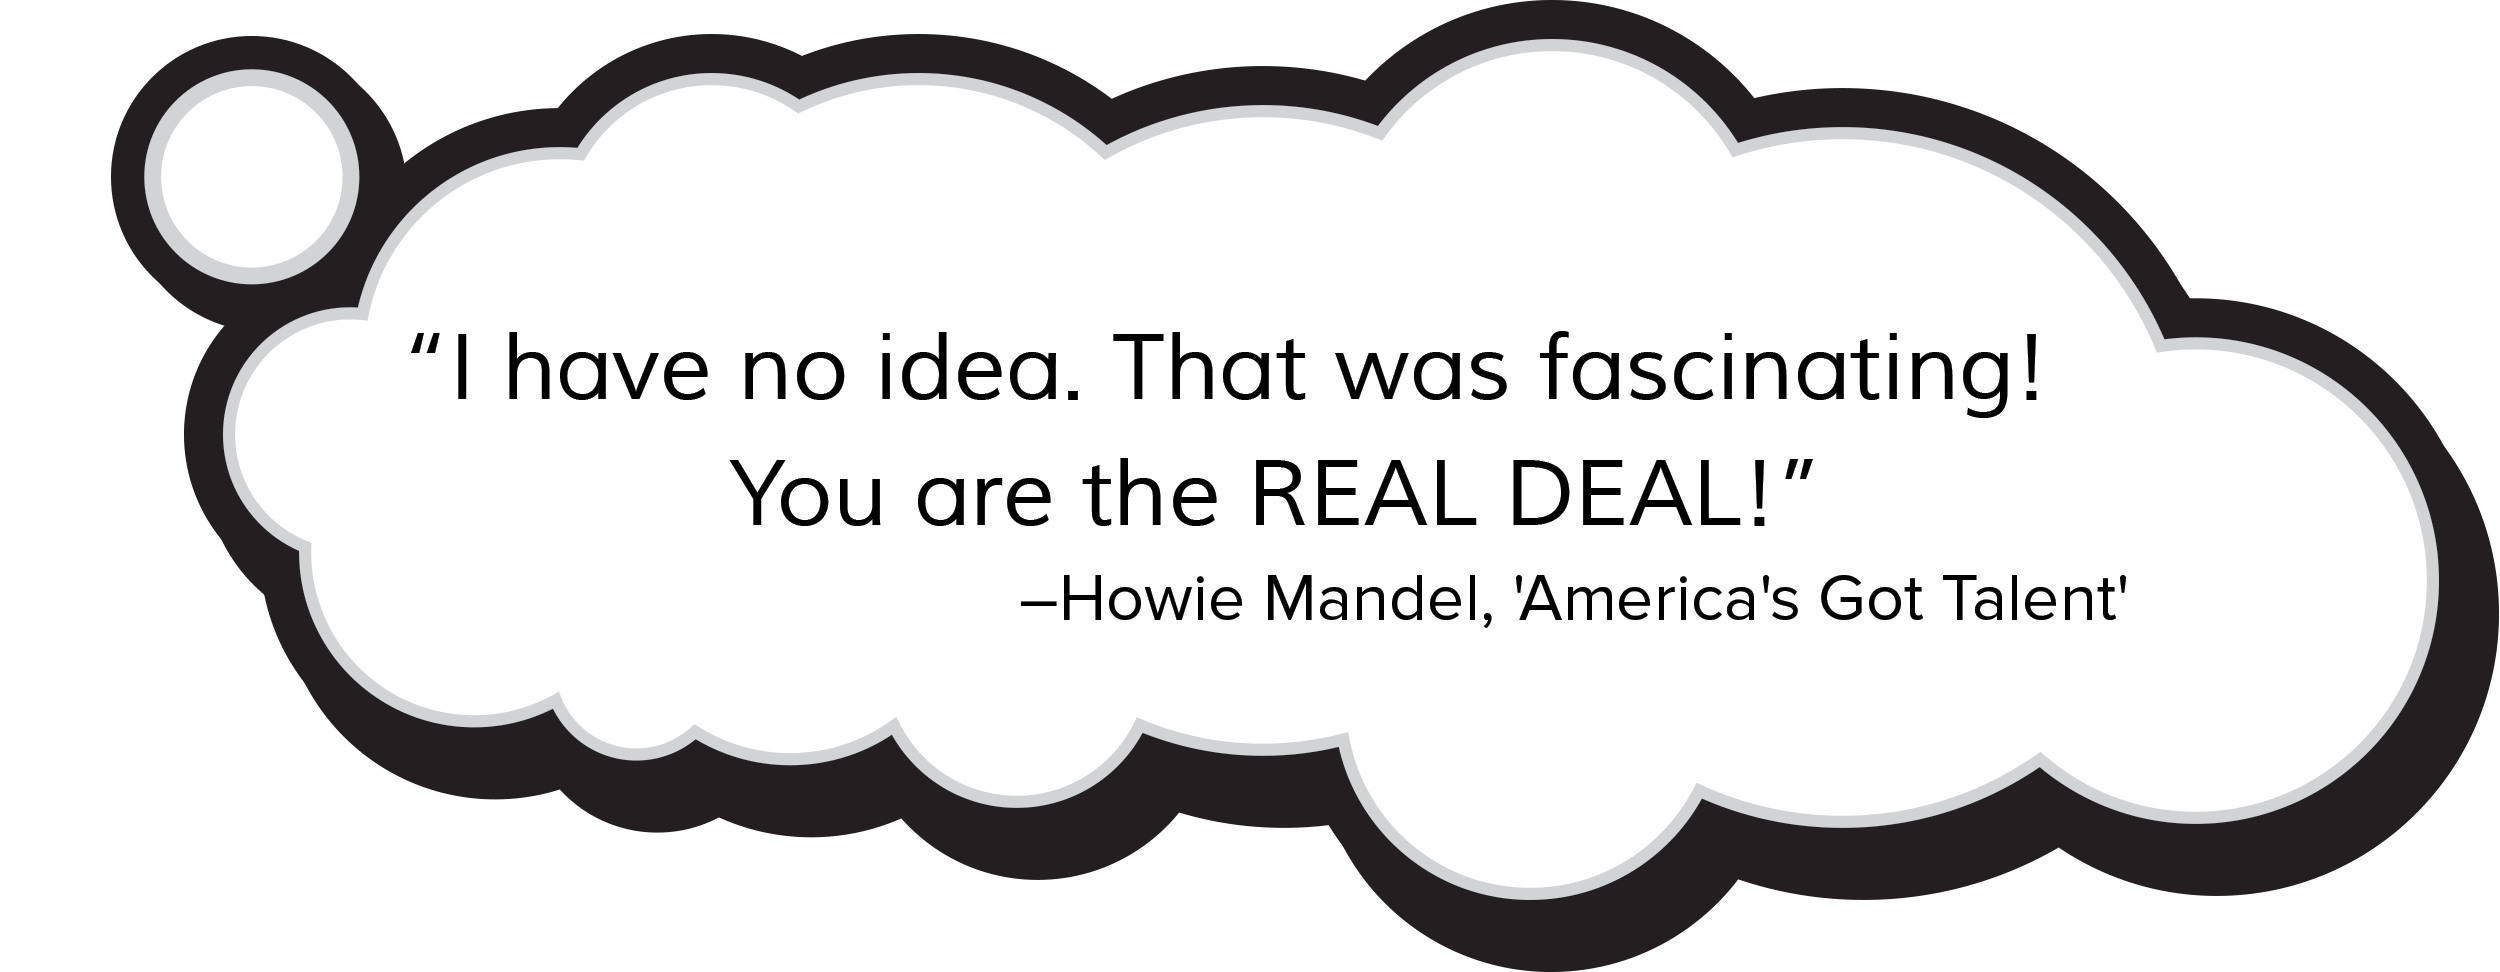 Howie-quote.png